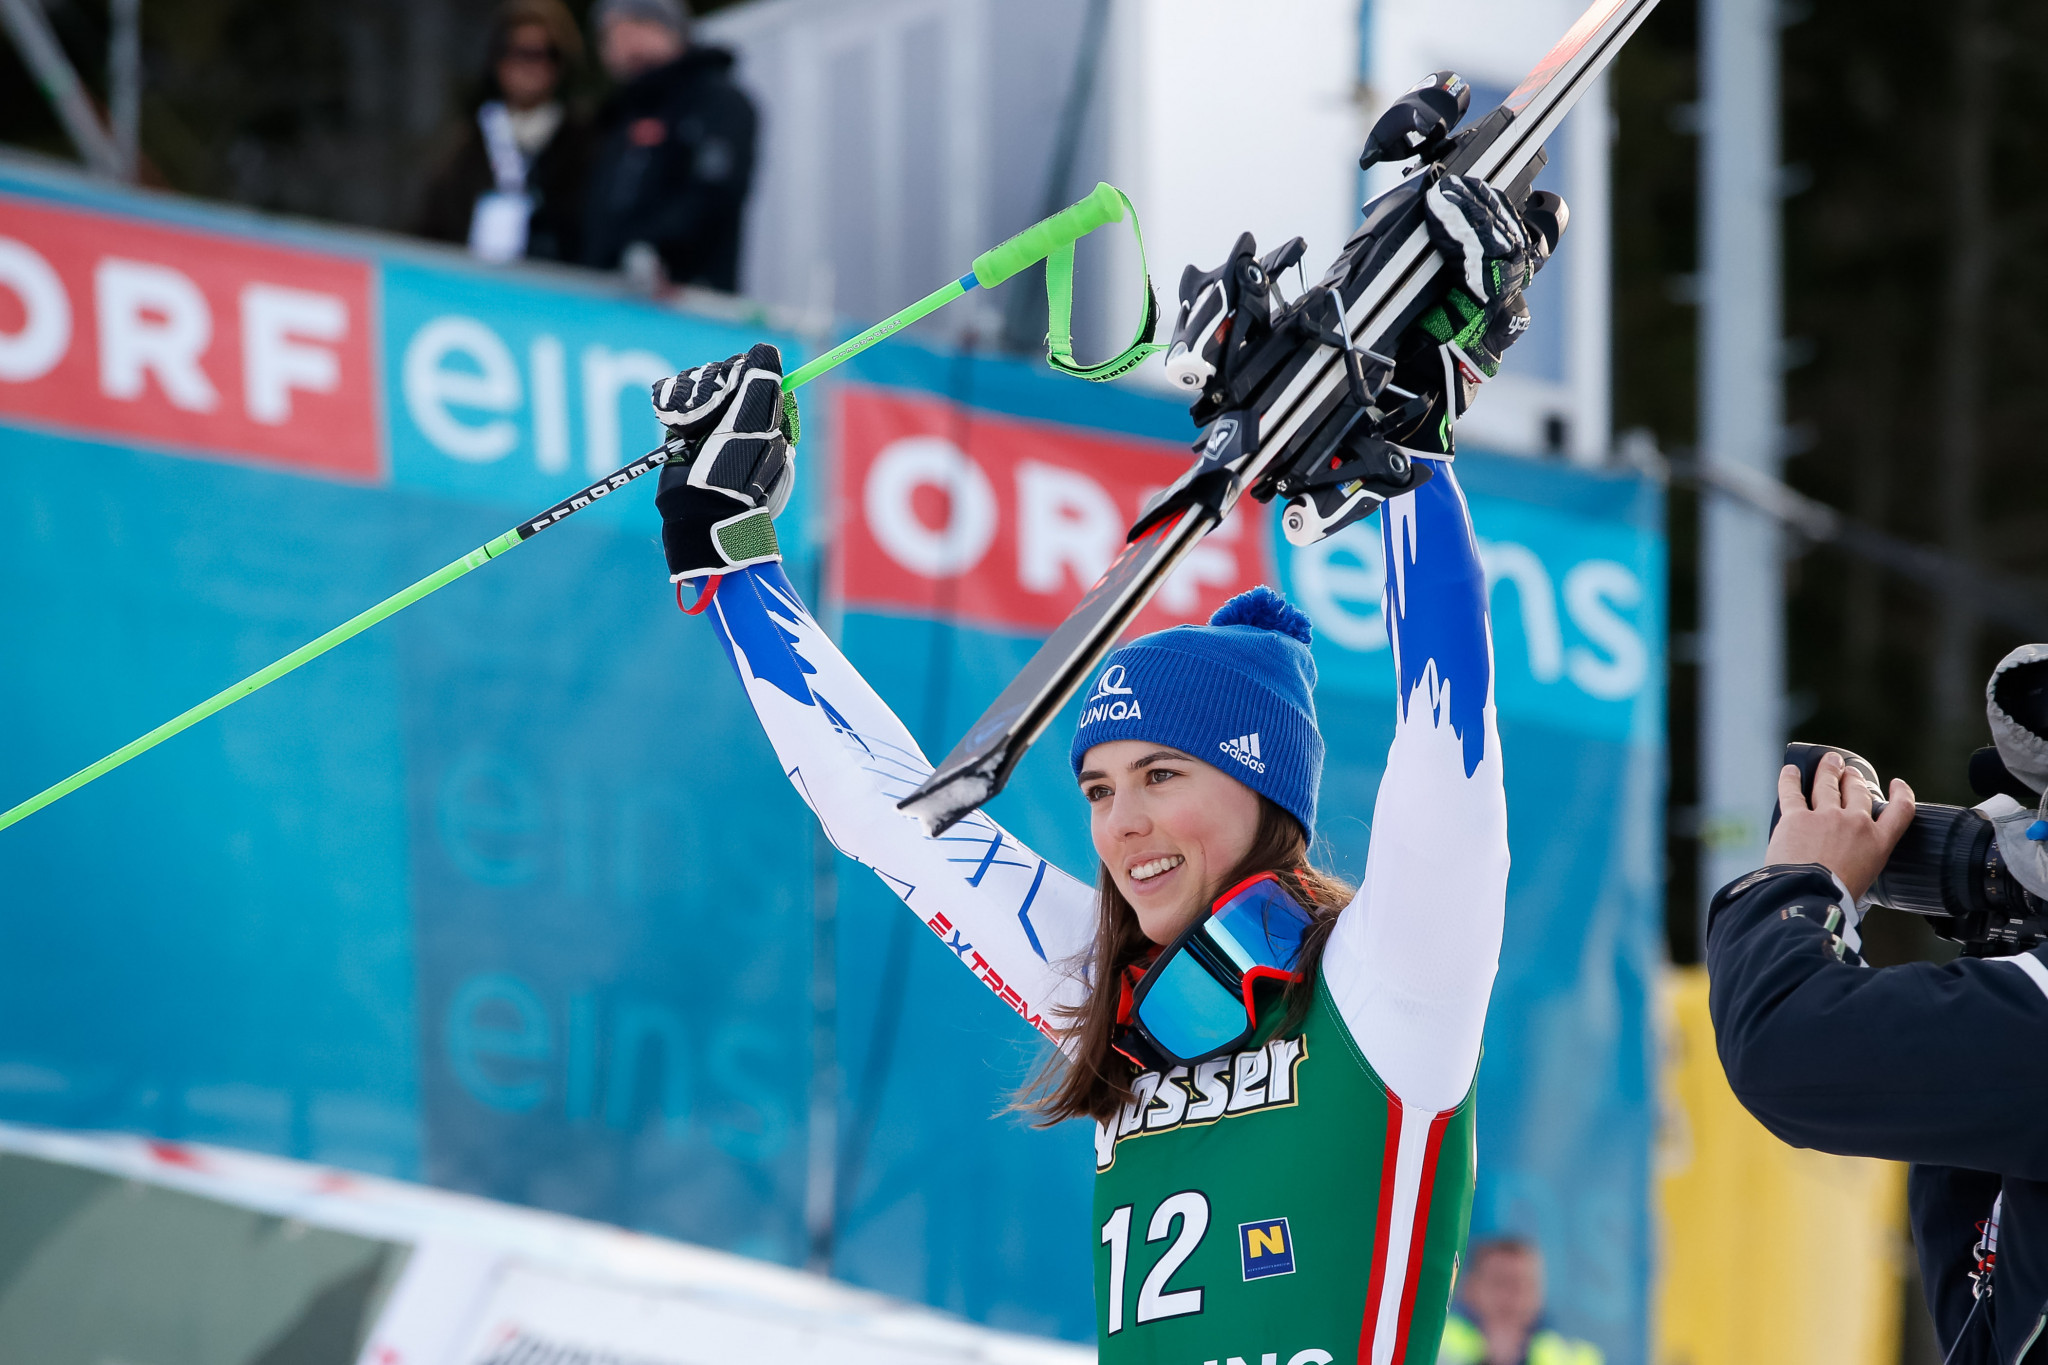 Vlhova secures first giant slalom victory of career at FIS Alpine Skiing World Cup in Semmering